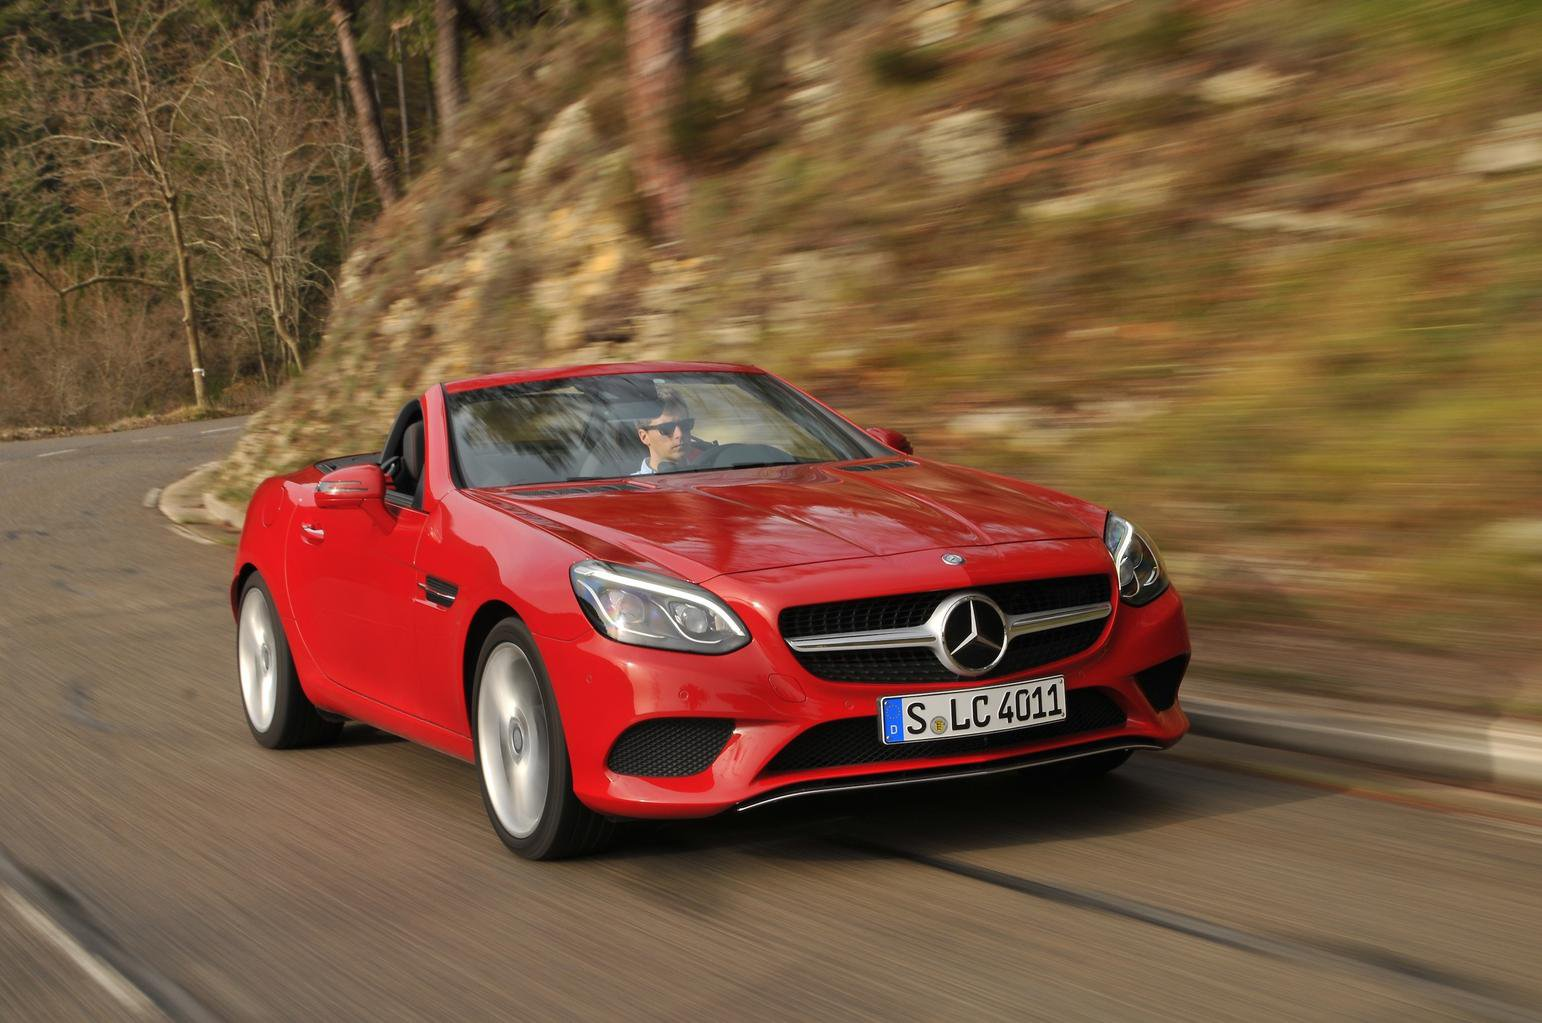 2016 Mercedes-Benz SLC 250 d review